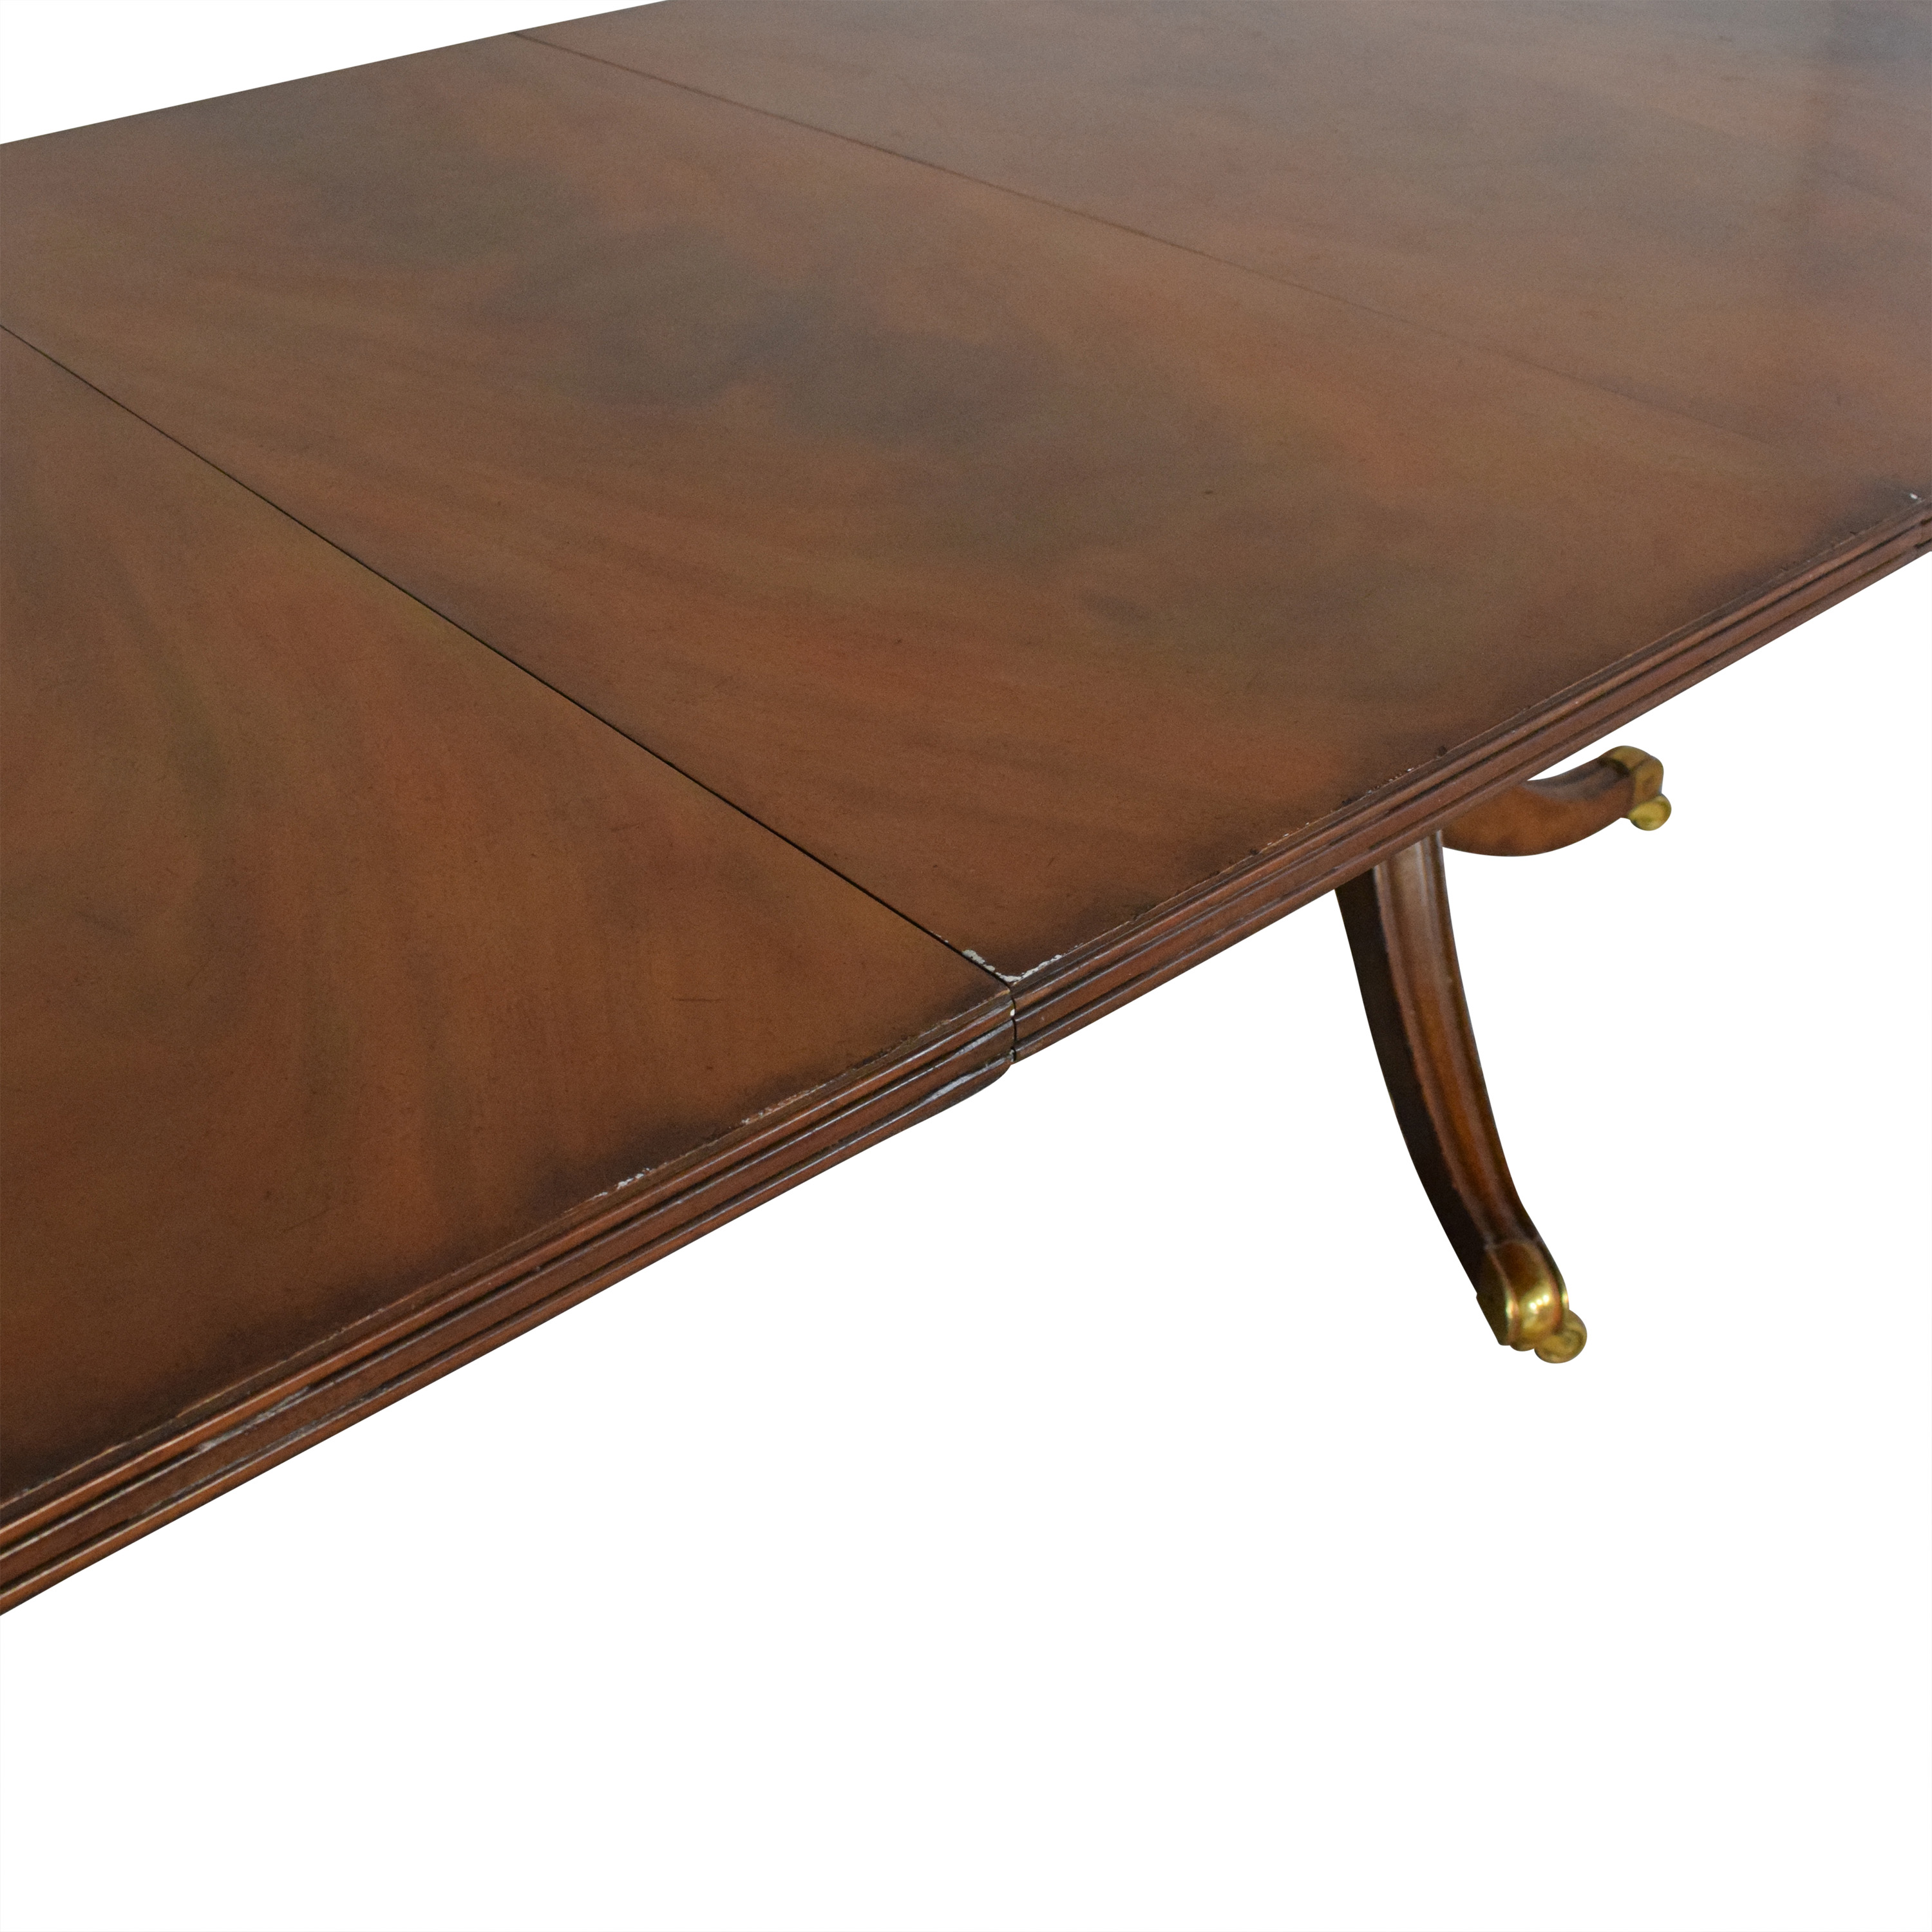 buy Maitland-Smith Maitland-Smith Double Pedestal Extendable Dining Table online